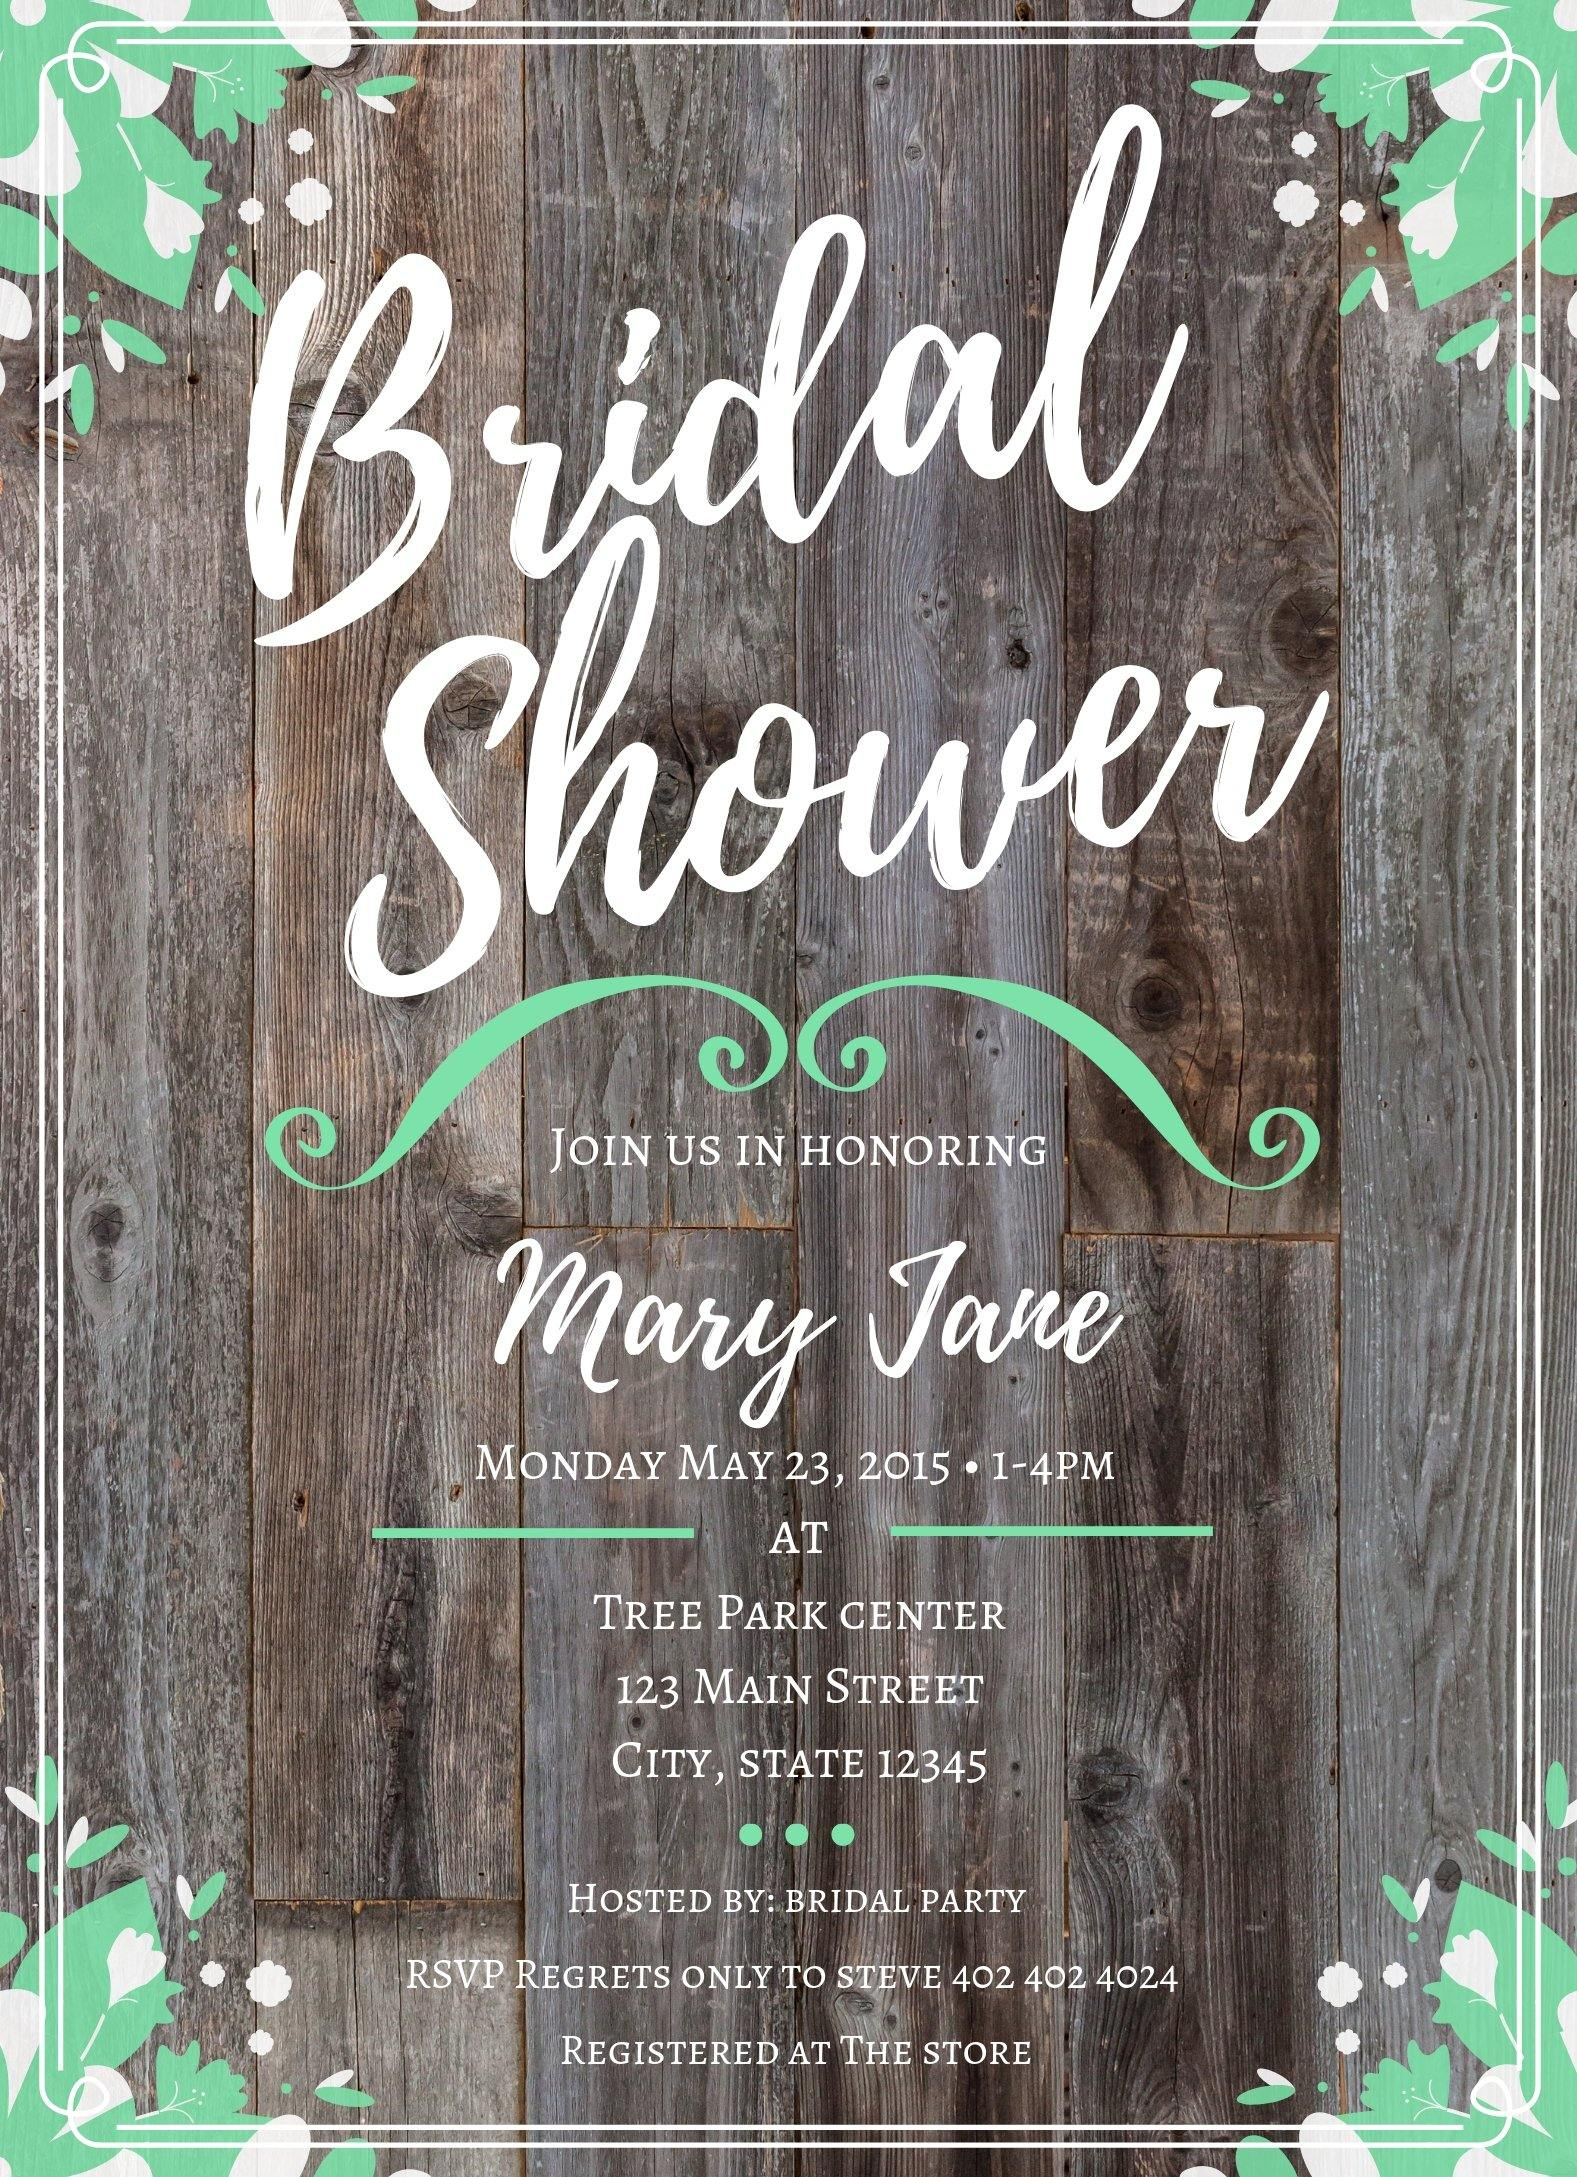 Mint-Green Bridal Shower Invitation Editable Download - Sunny Jar Designs